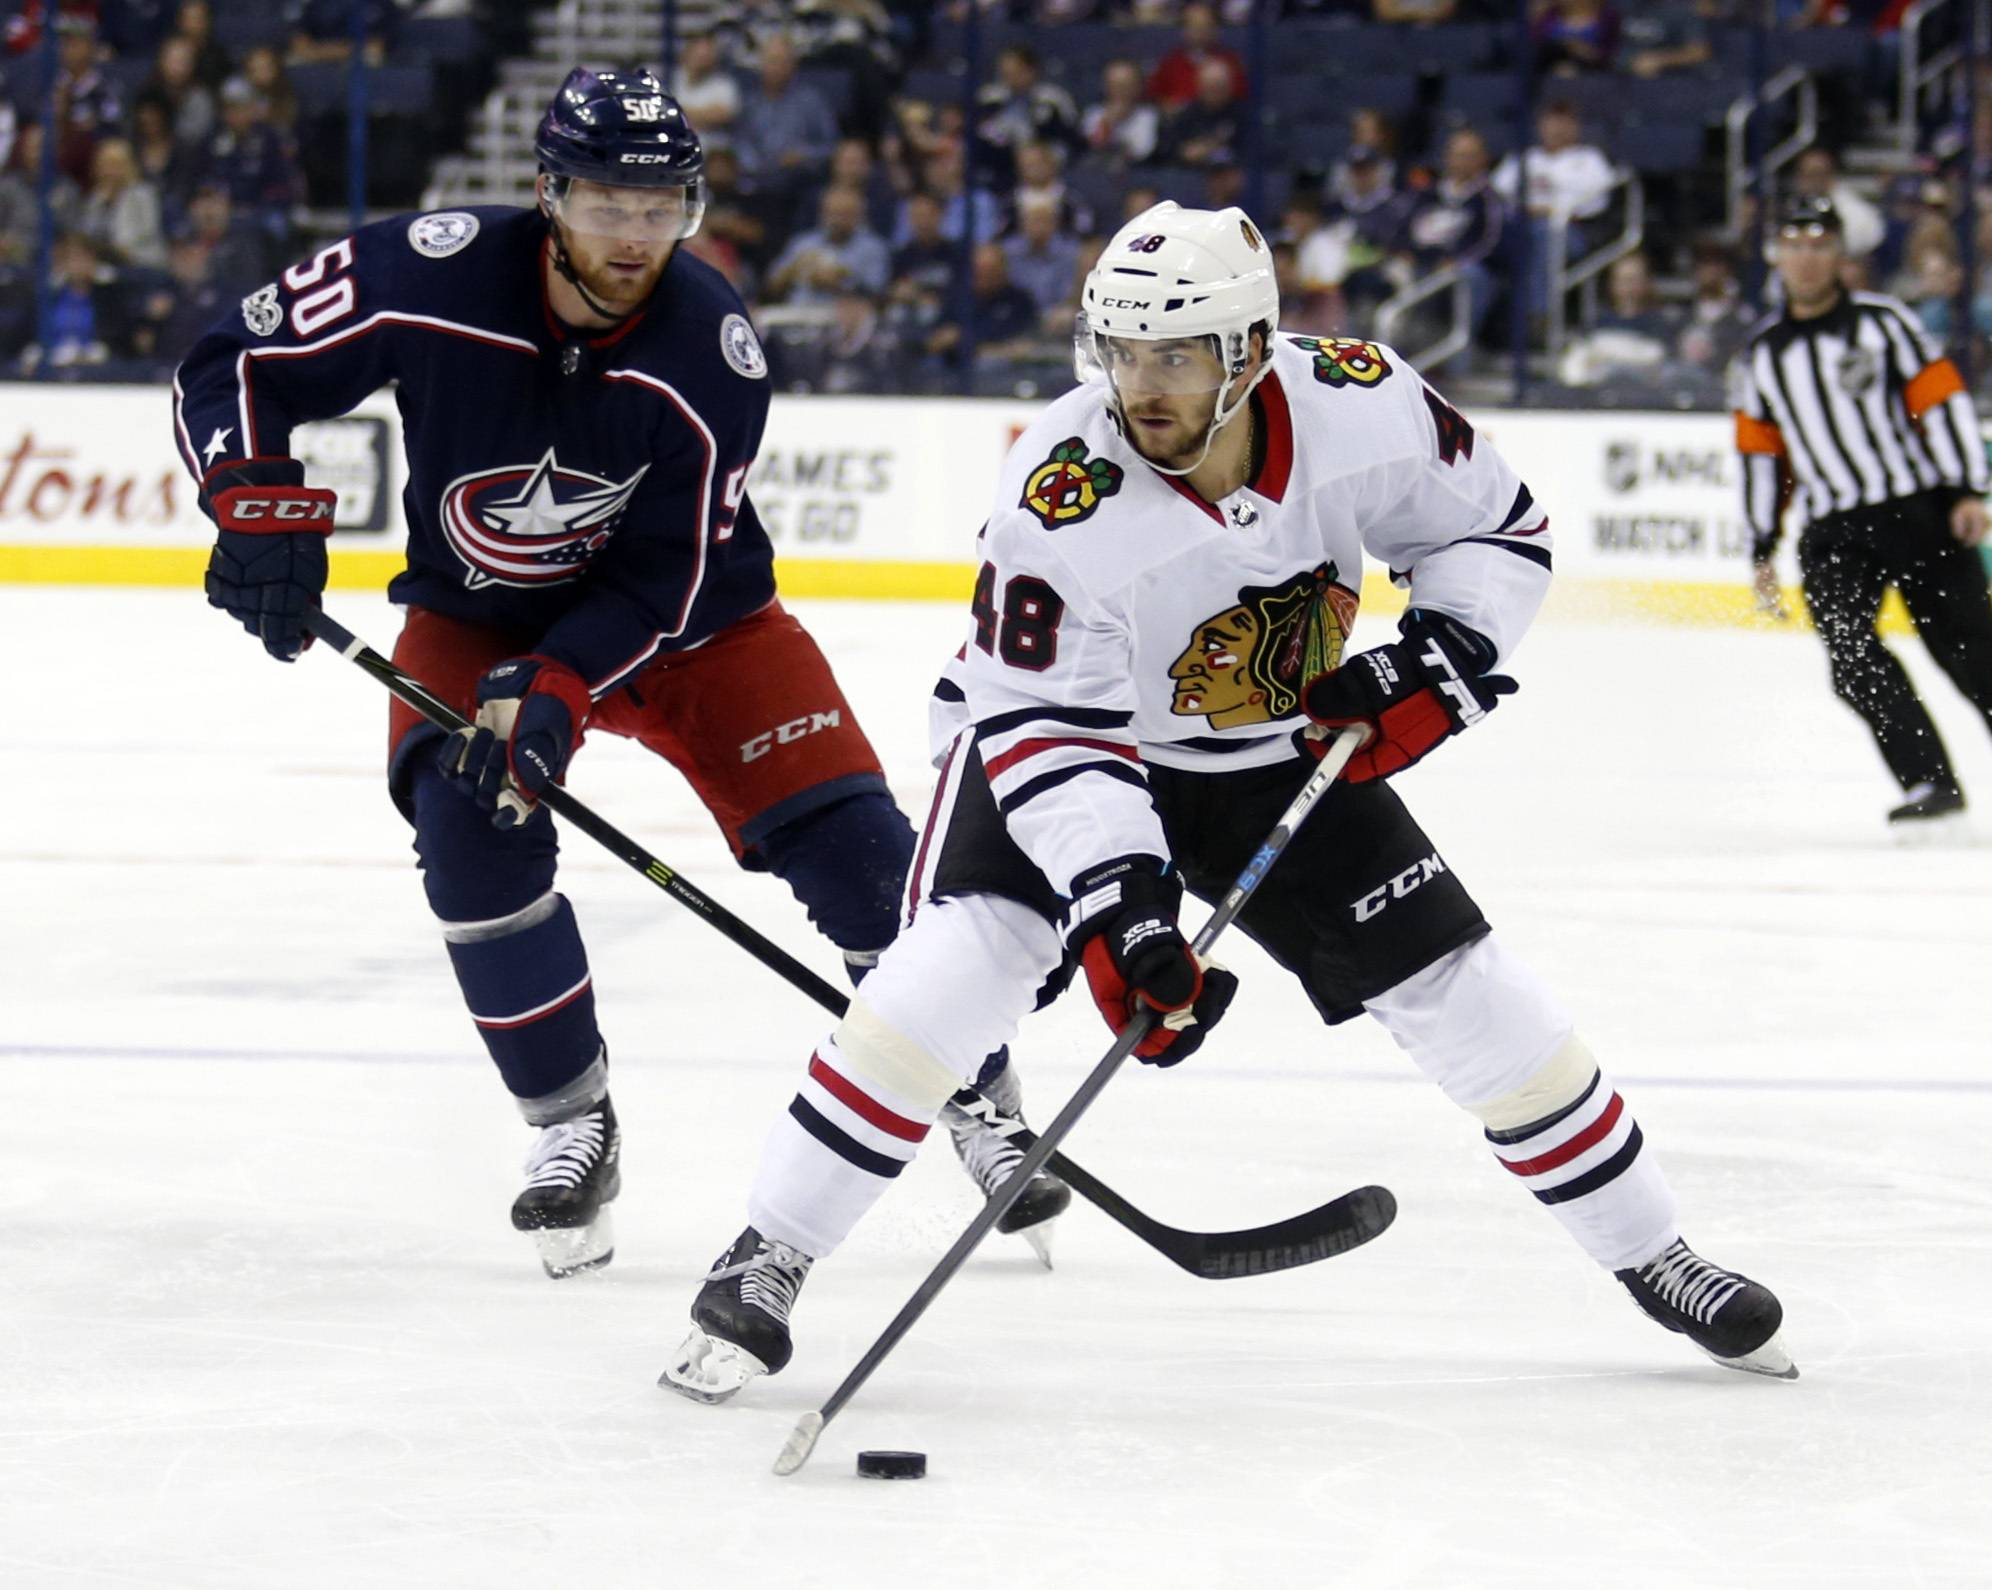 Forward Vinnie Hinostroza has agreed to a 2-year contract extension with the Chicago Blackhawks. Hinostroza collected 25 points in 50 NHL games last season.